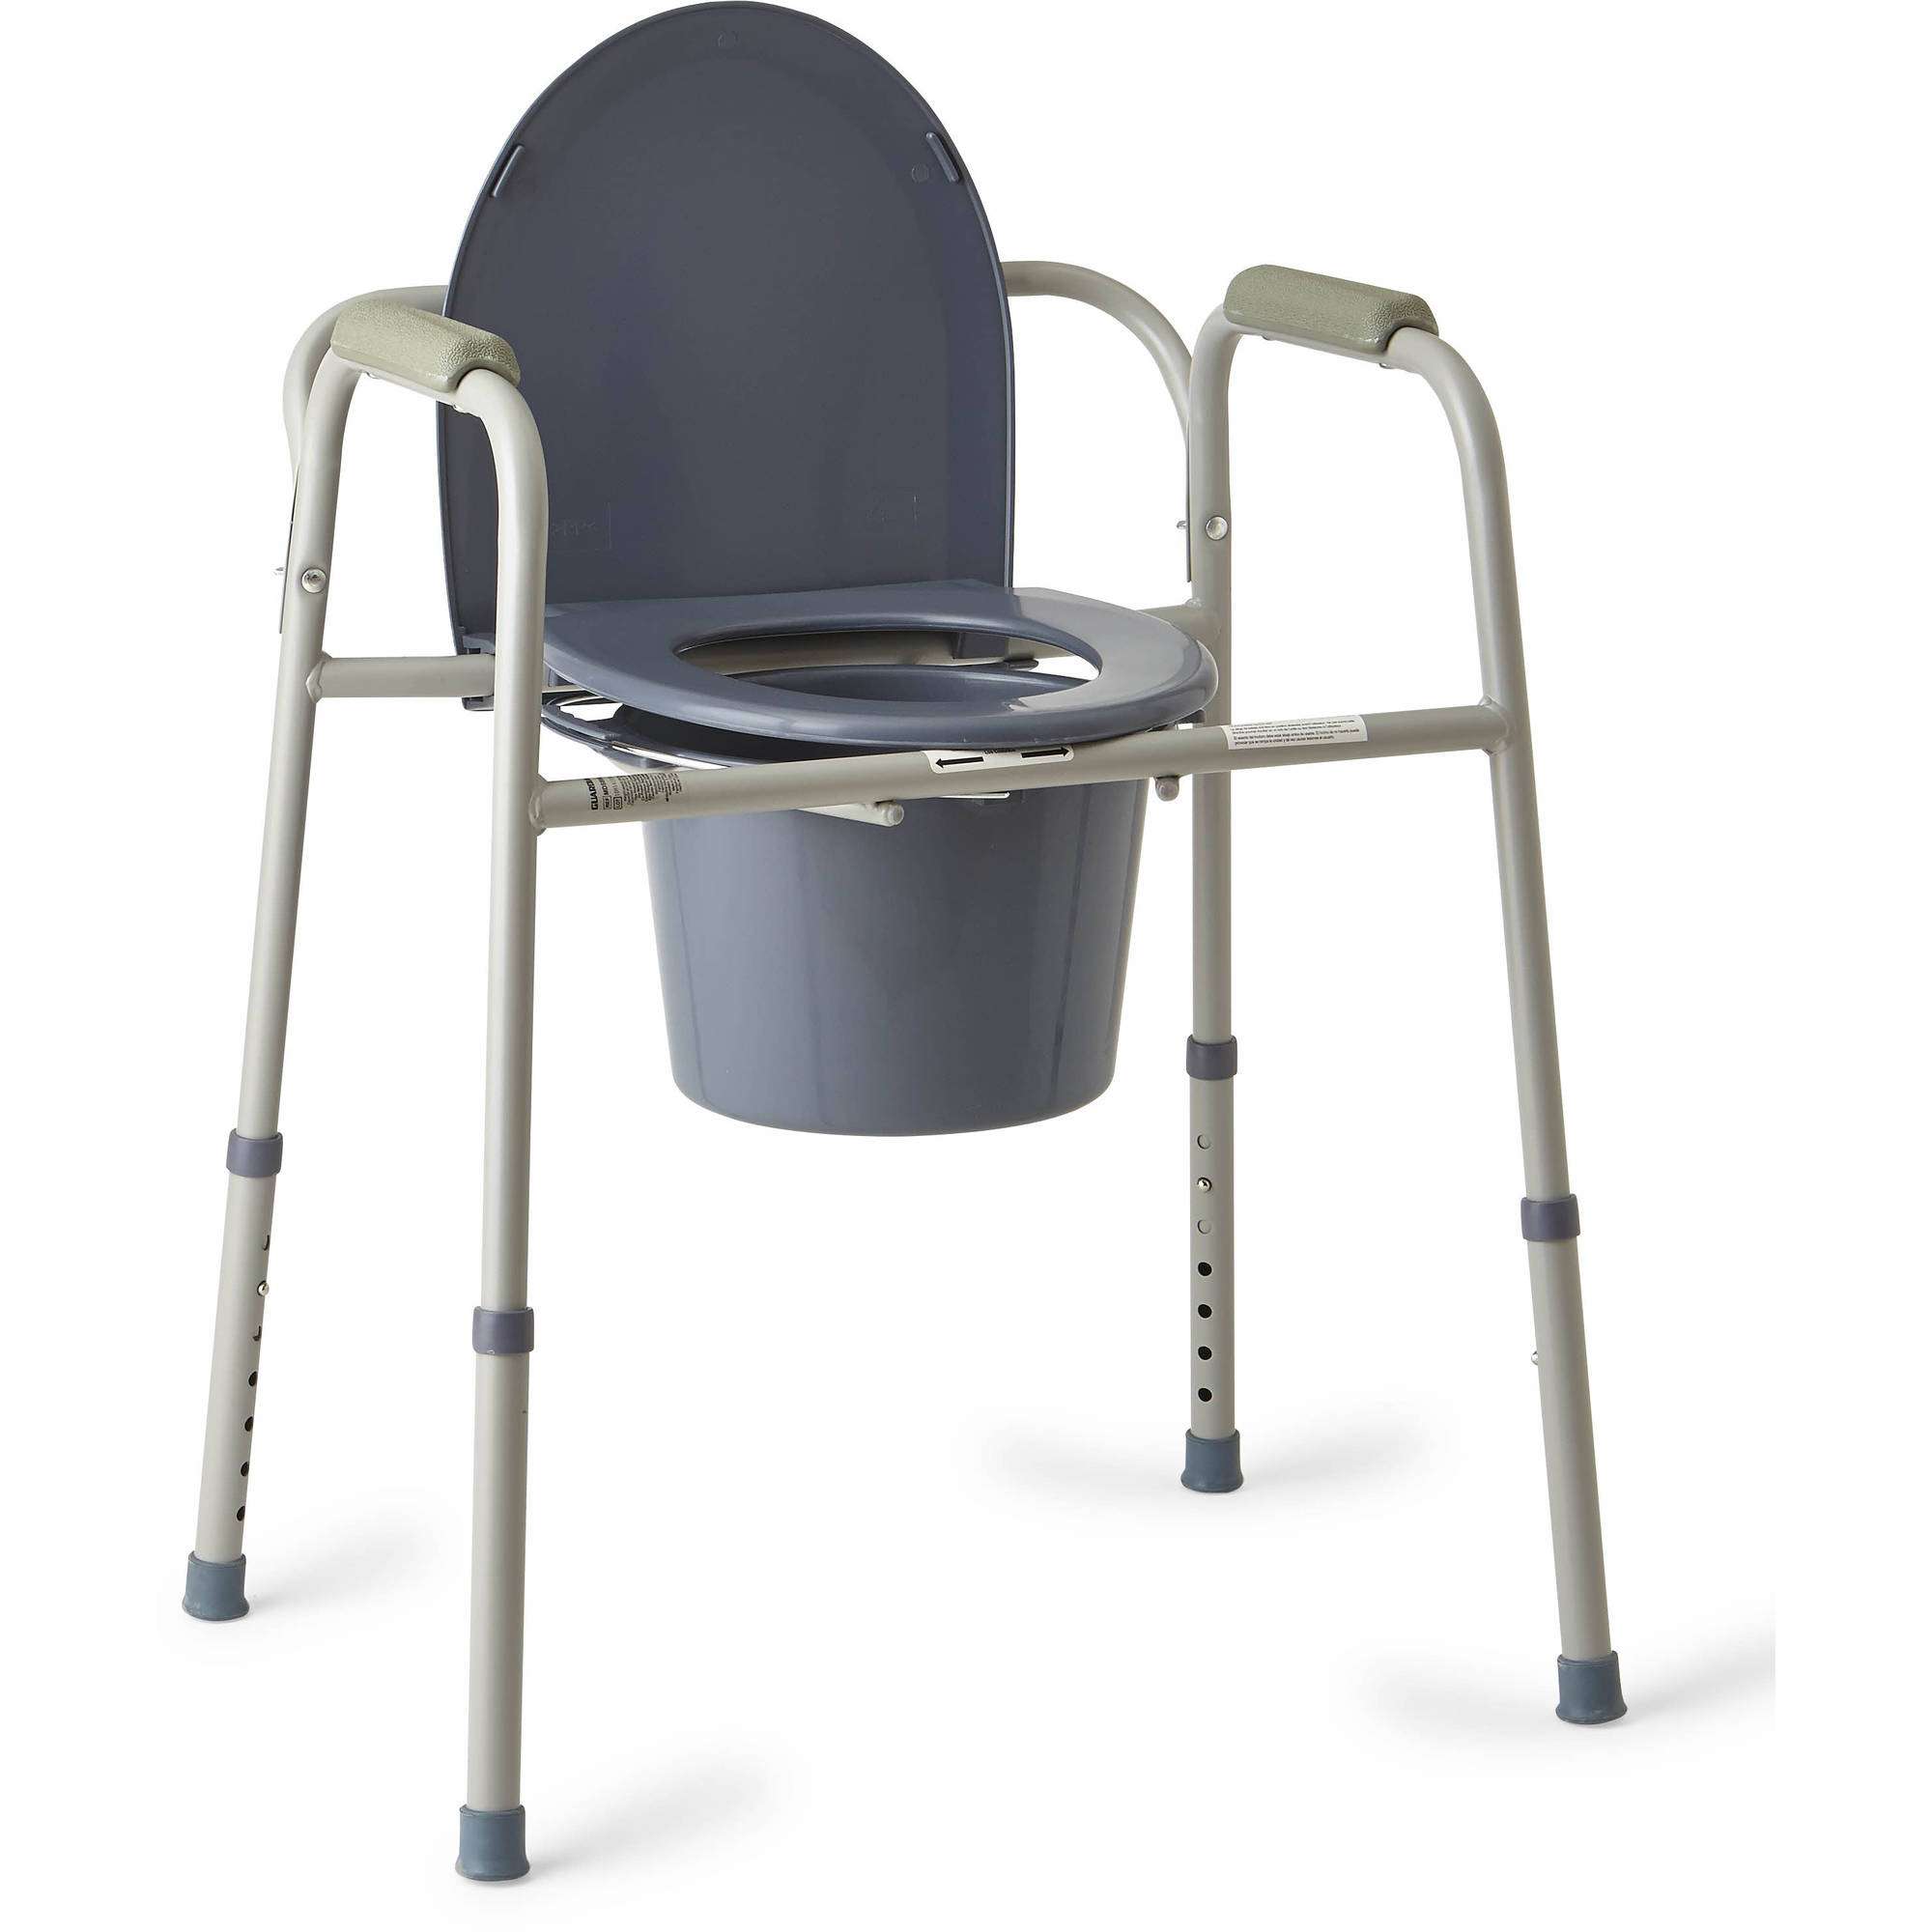 Bedside Commode Chair Medline Steel 3 In 1 Bedside Toilet Commode